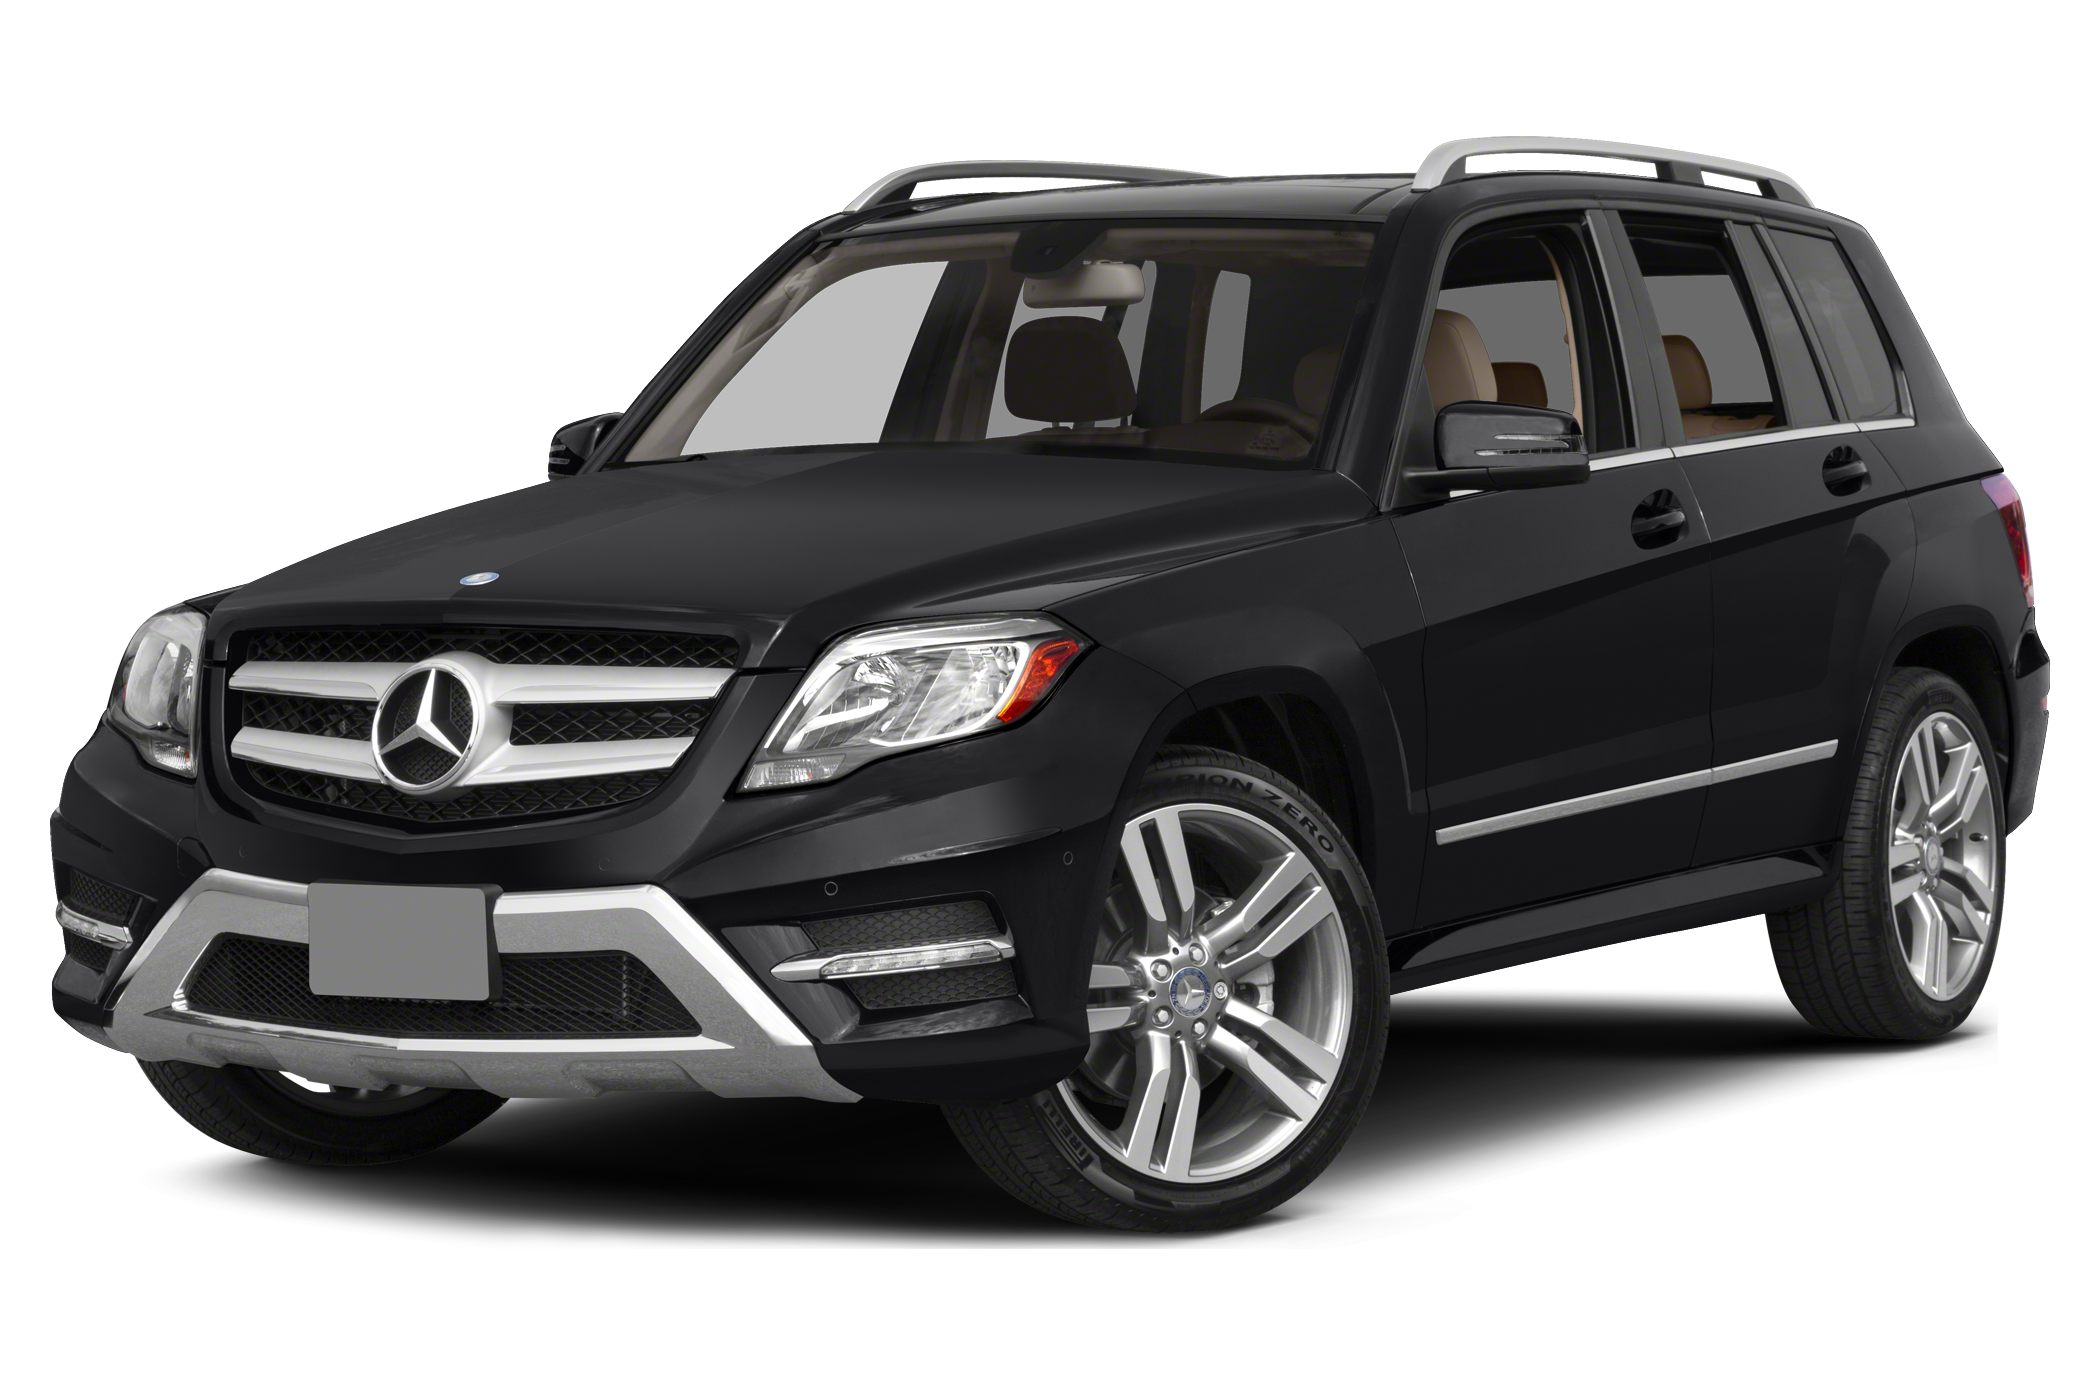 2015 Mercedes-Benz GLK-Class GLK350 SUV for sale in Evansville for $48,245 with 10 miles